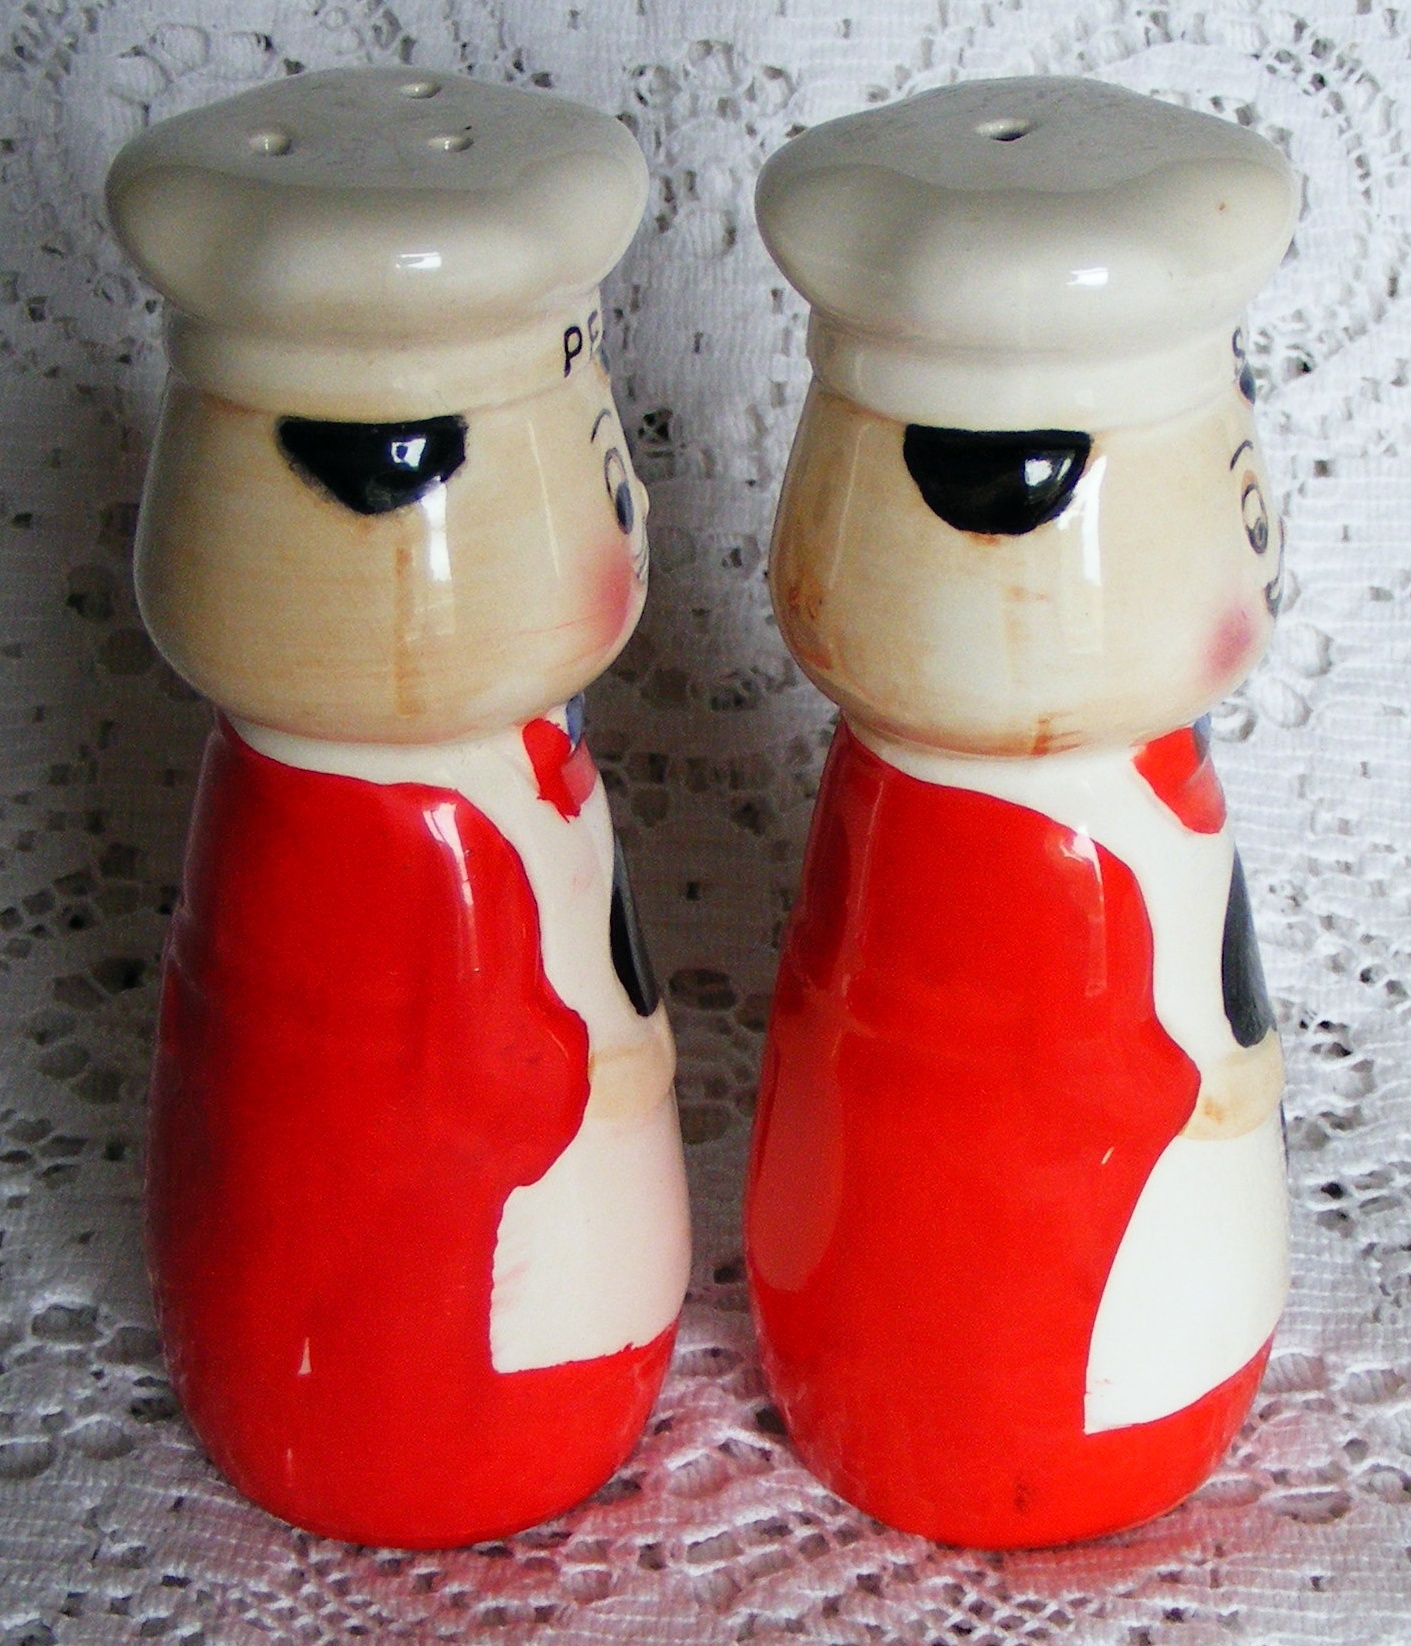 Salt and pepper chef cruet set red and white ebay - Salt and pepper cruet set ...